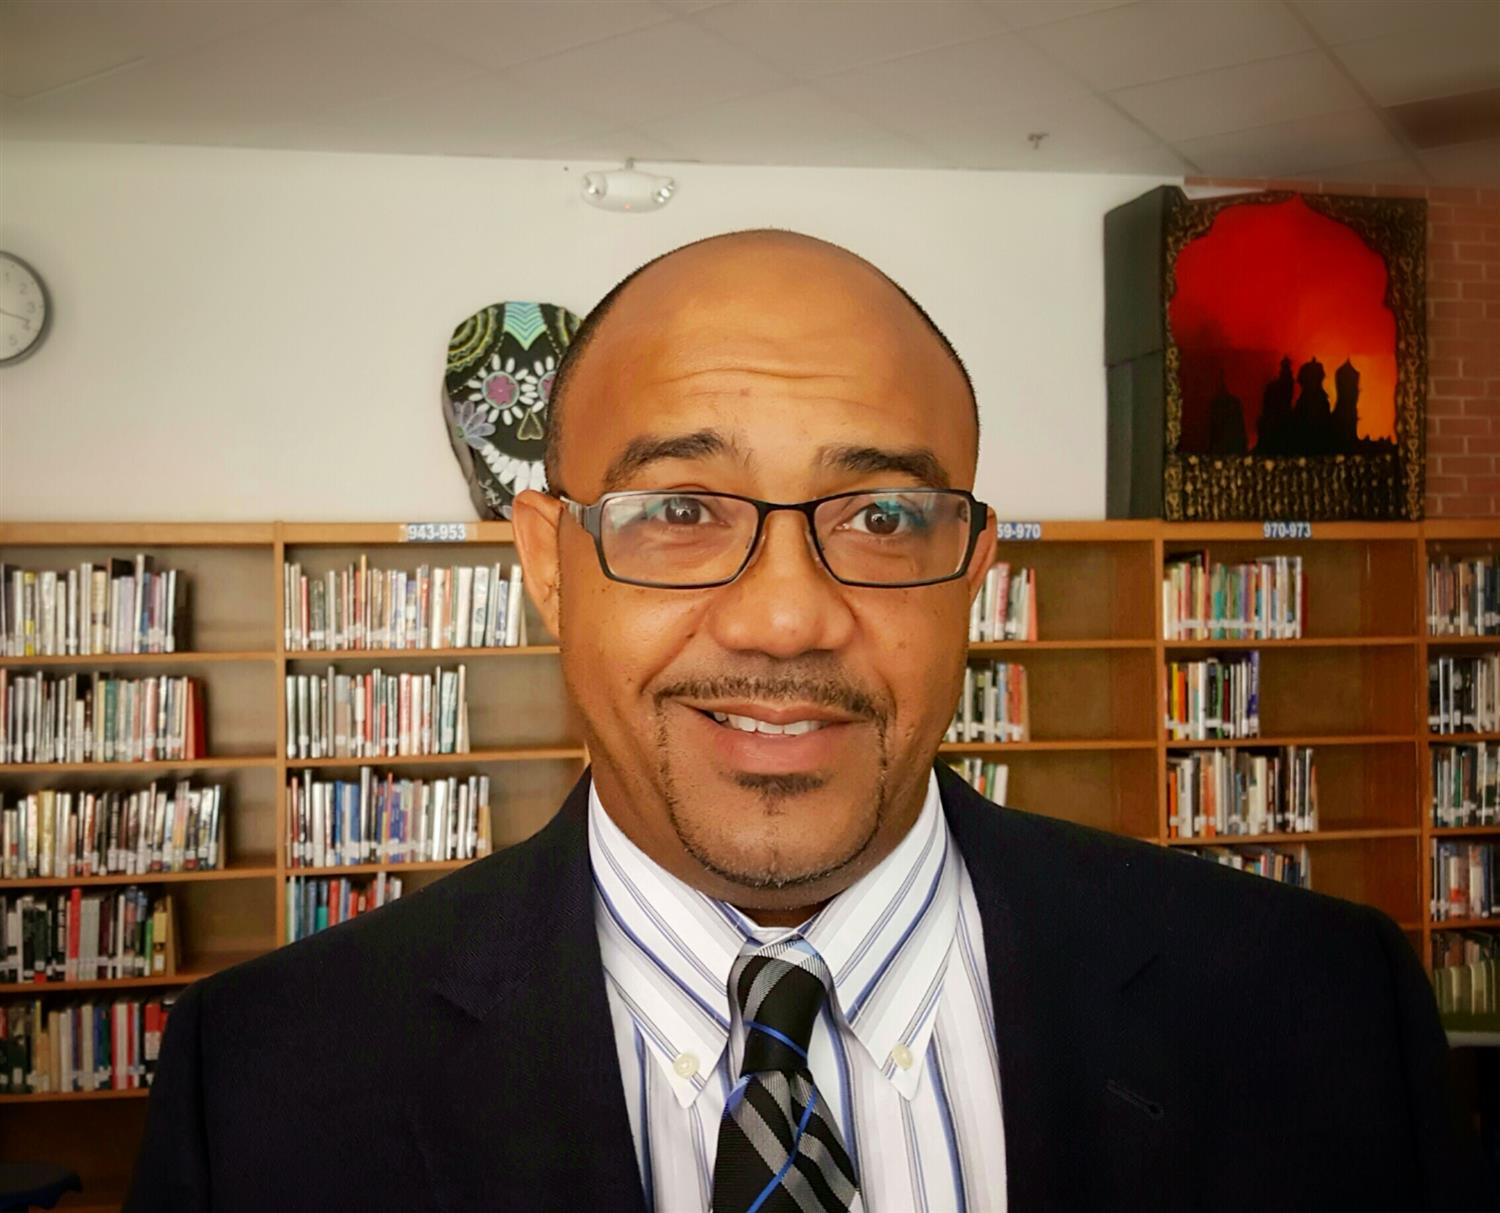 Mr. L. Glenn Horton, Jr - Administrative Intern